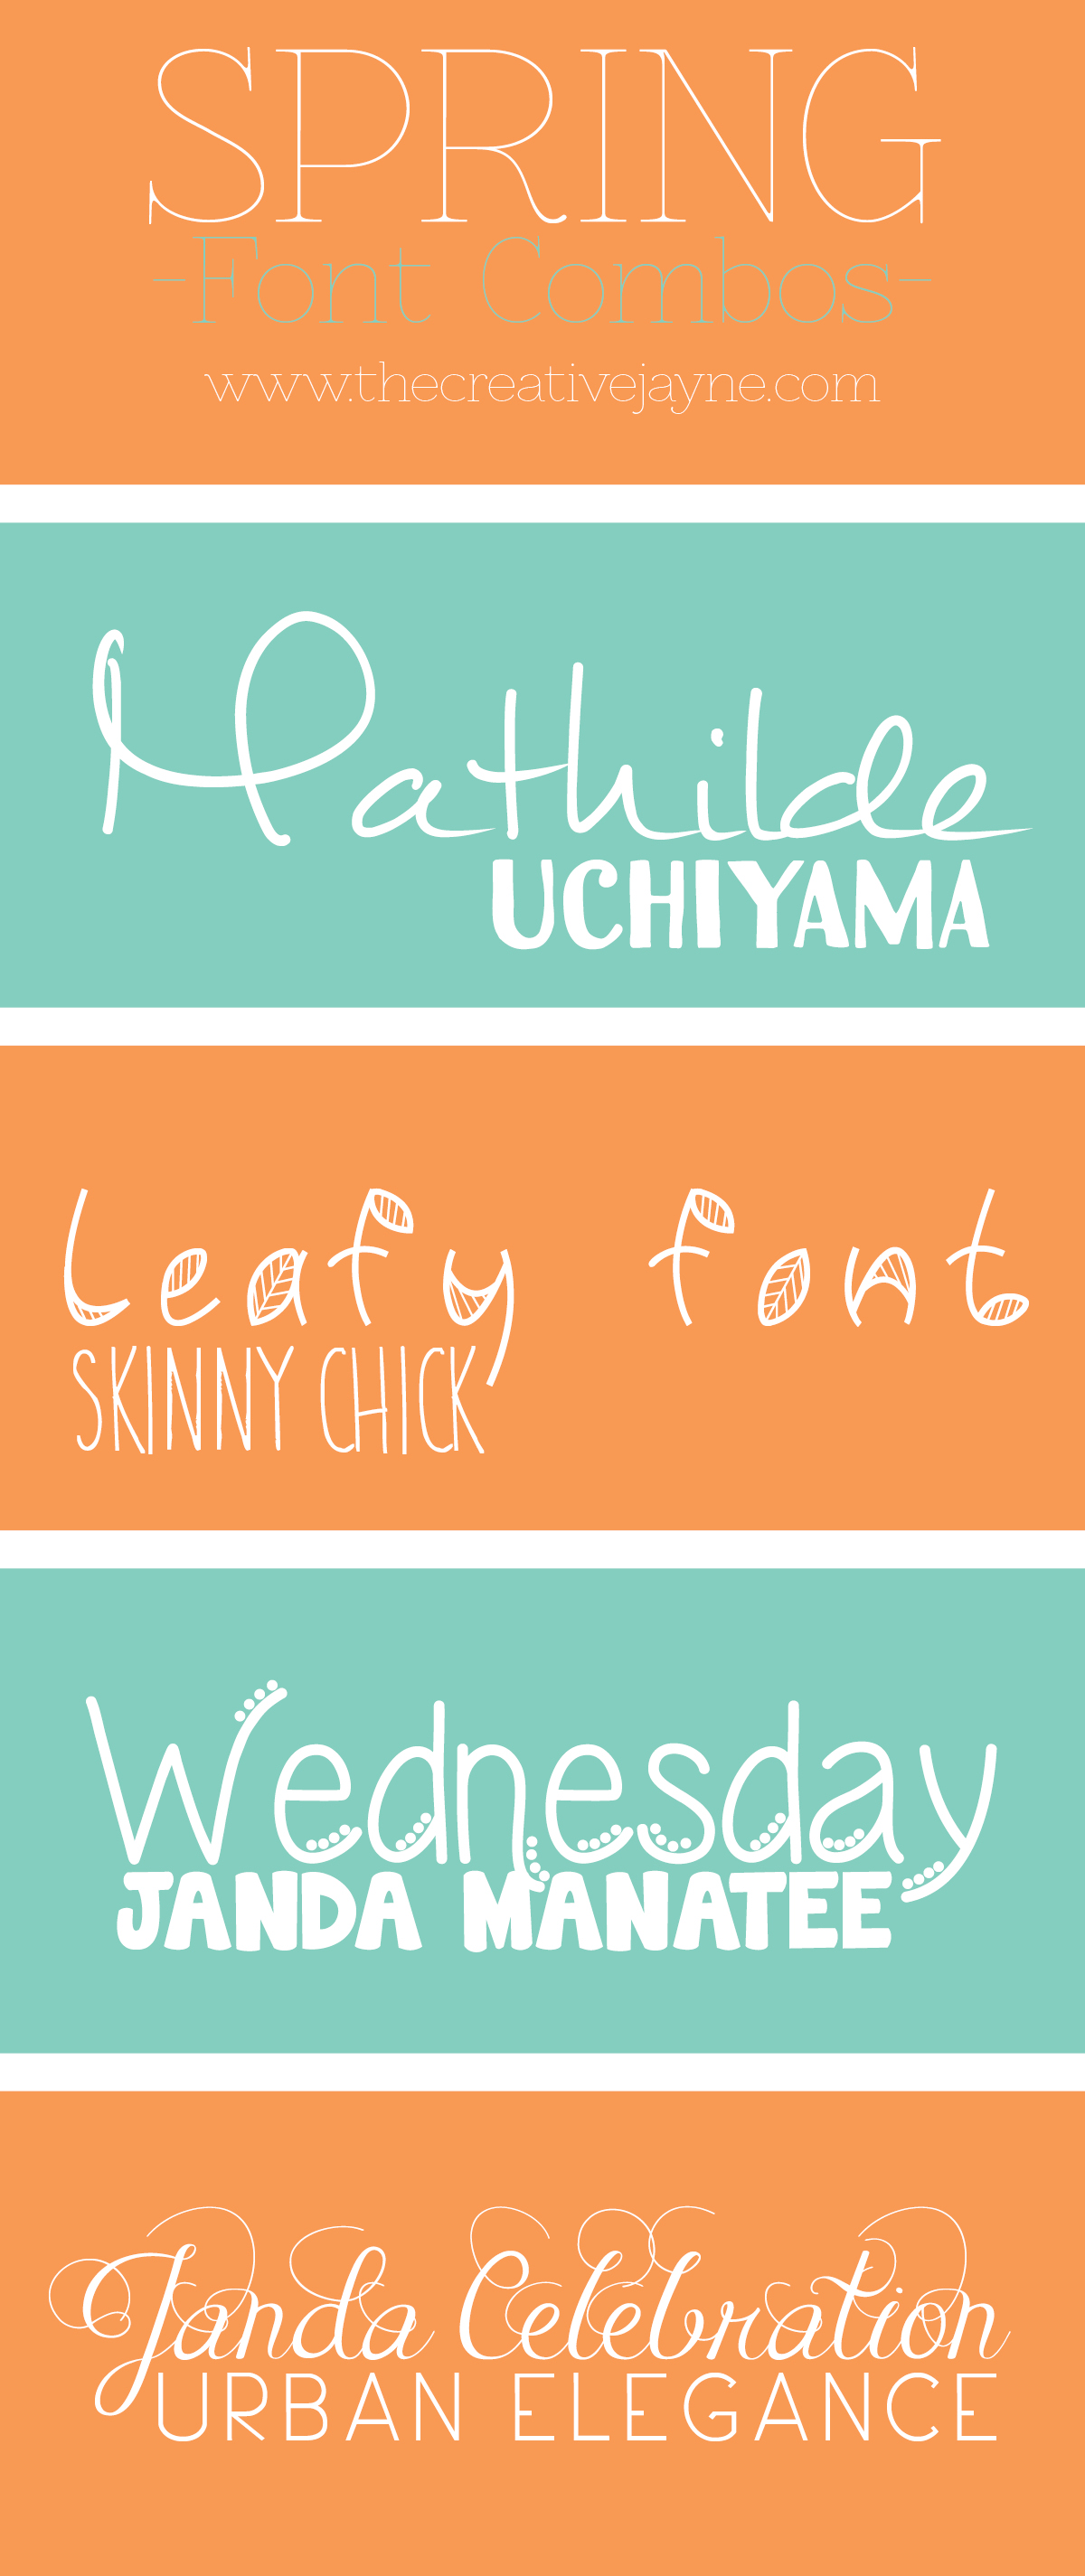 the Creative Jayne Spring font Combos